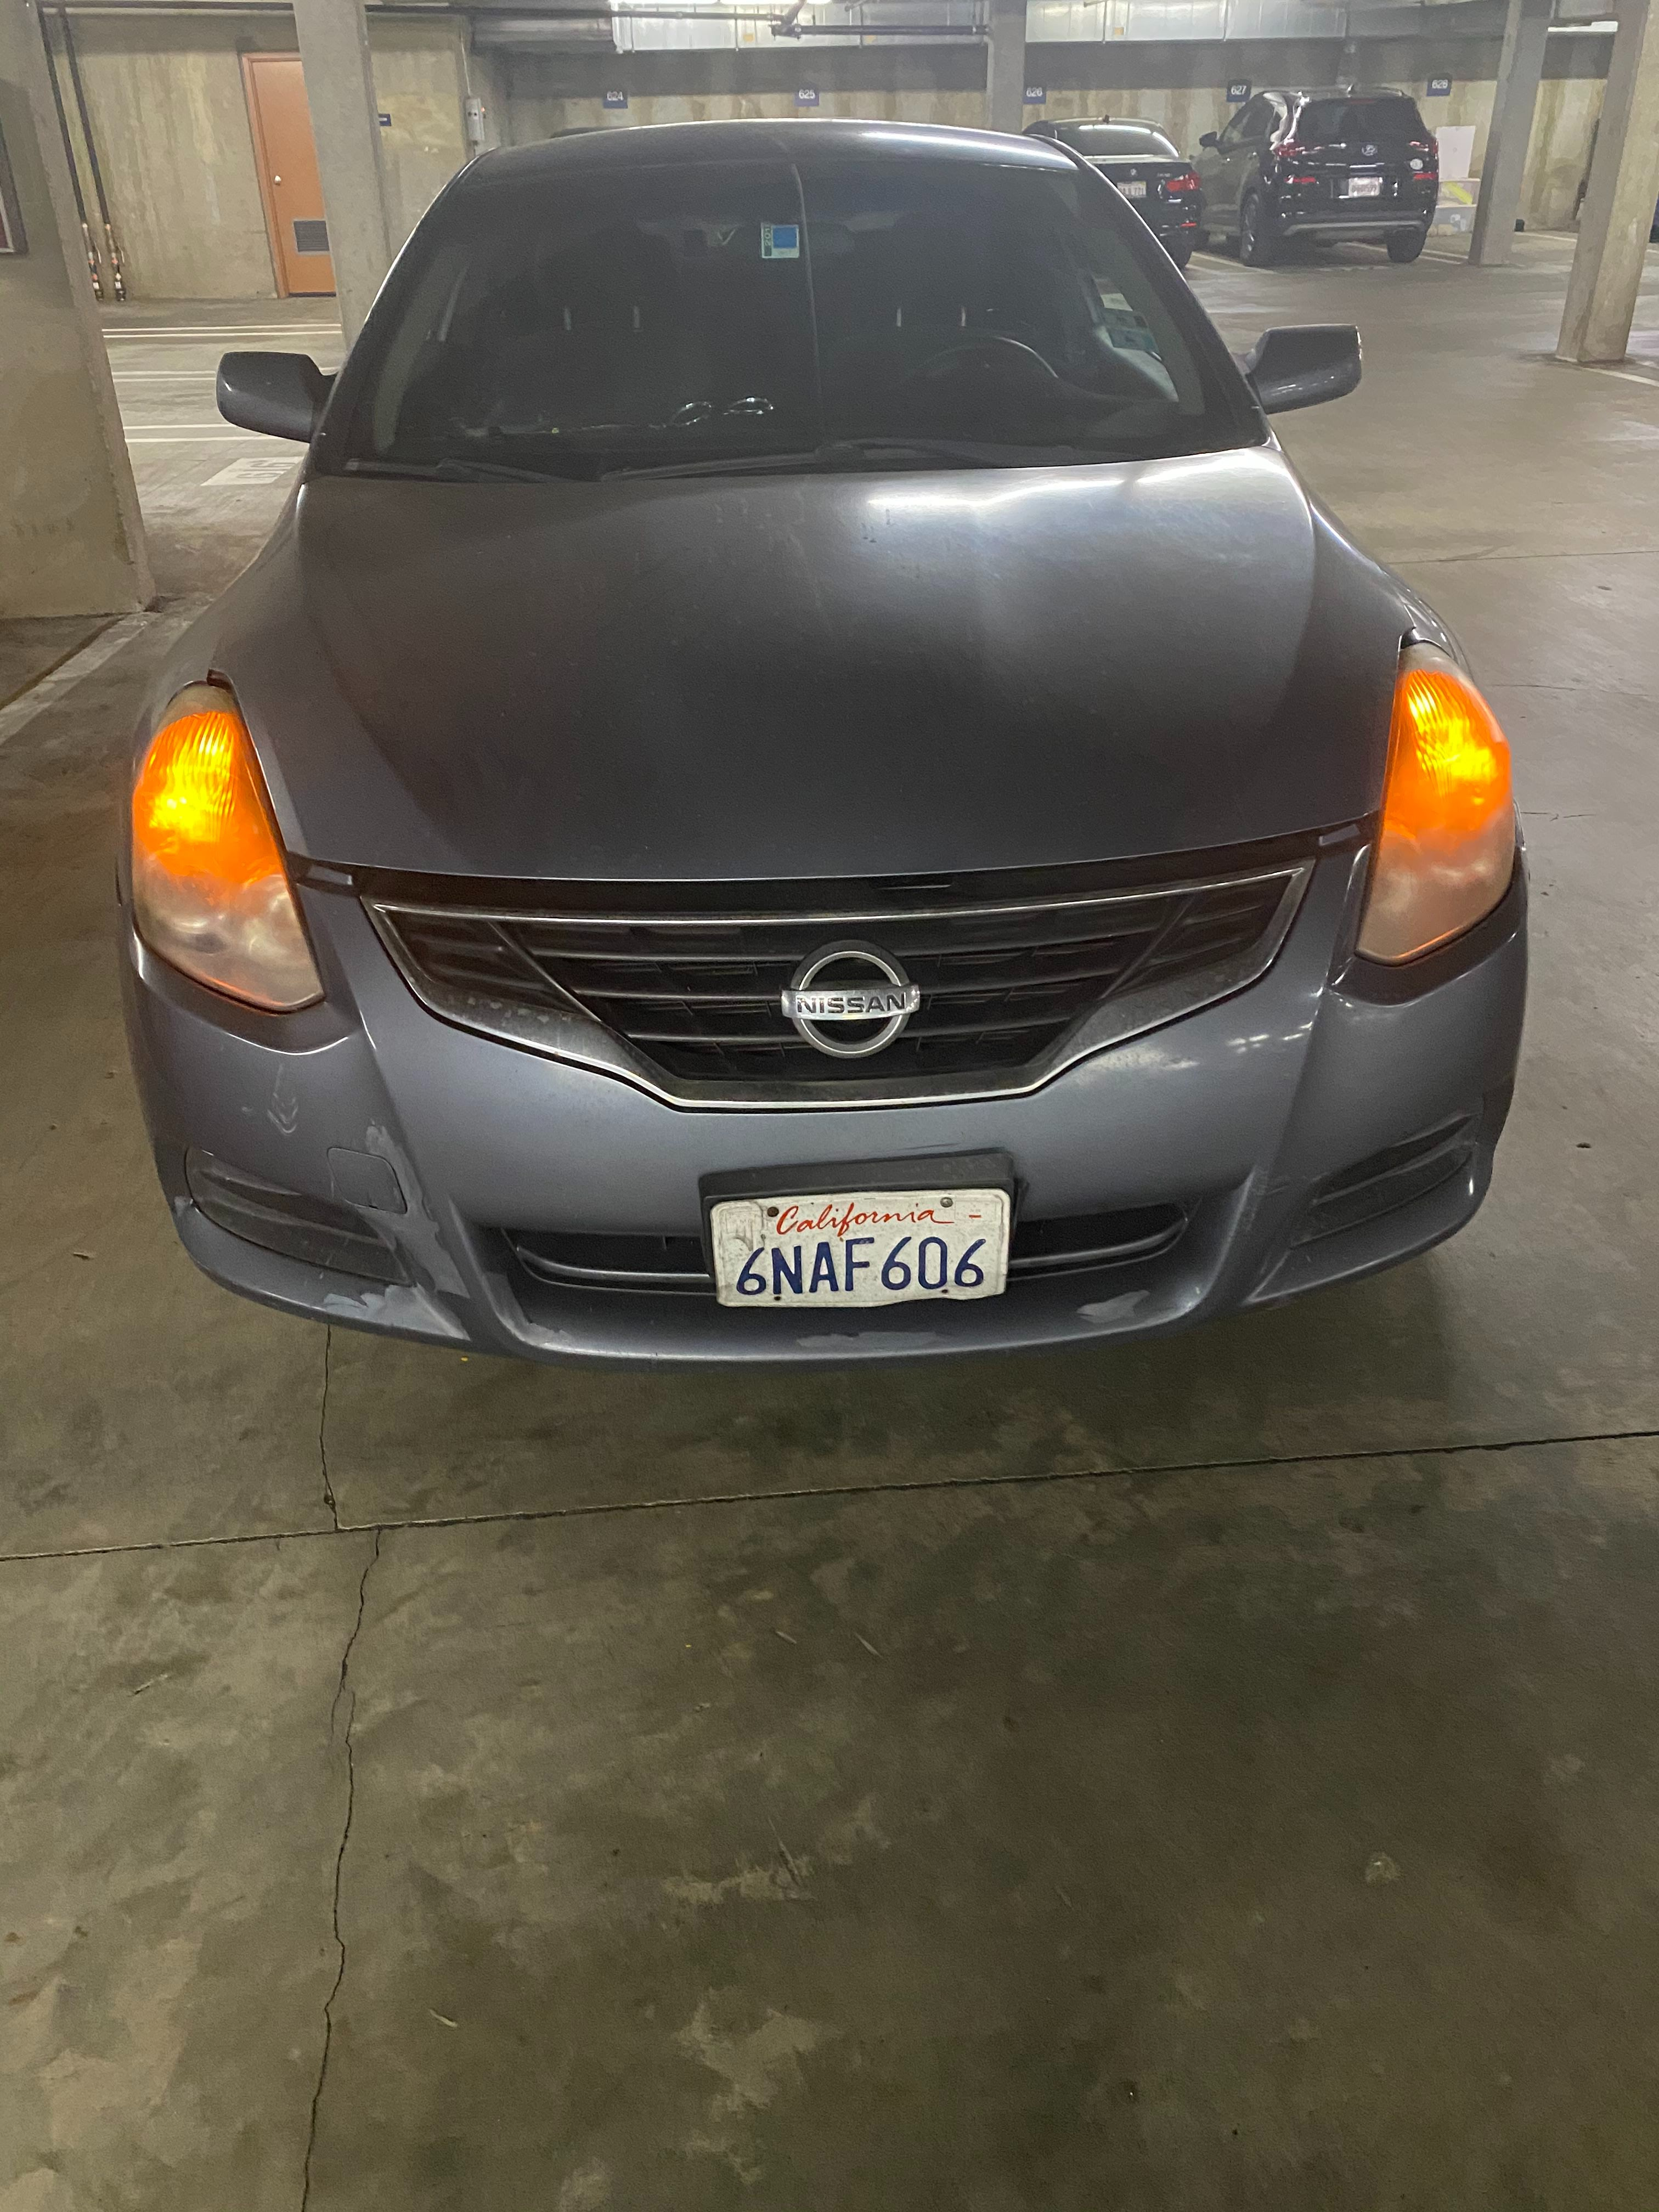 Junk 2010 Nissan Altima in Long Beach